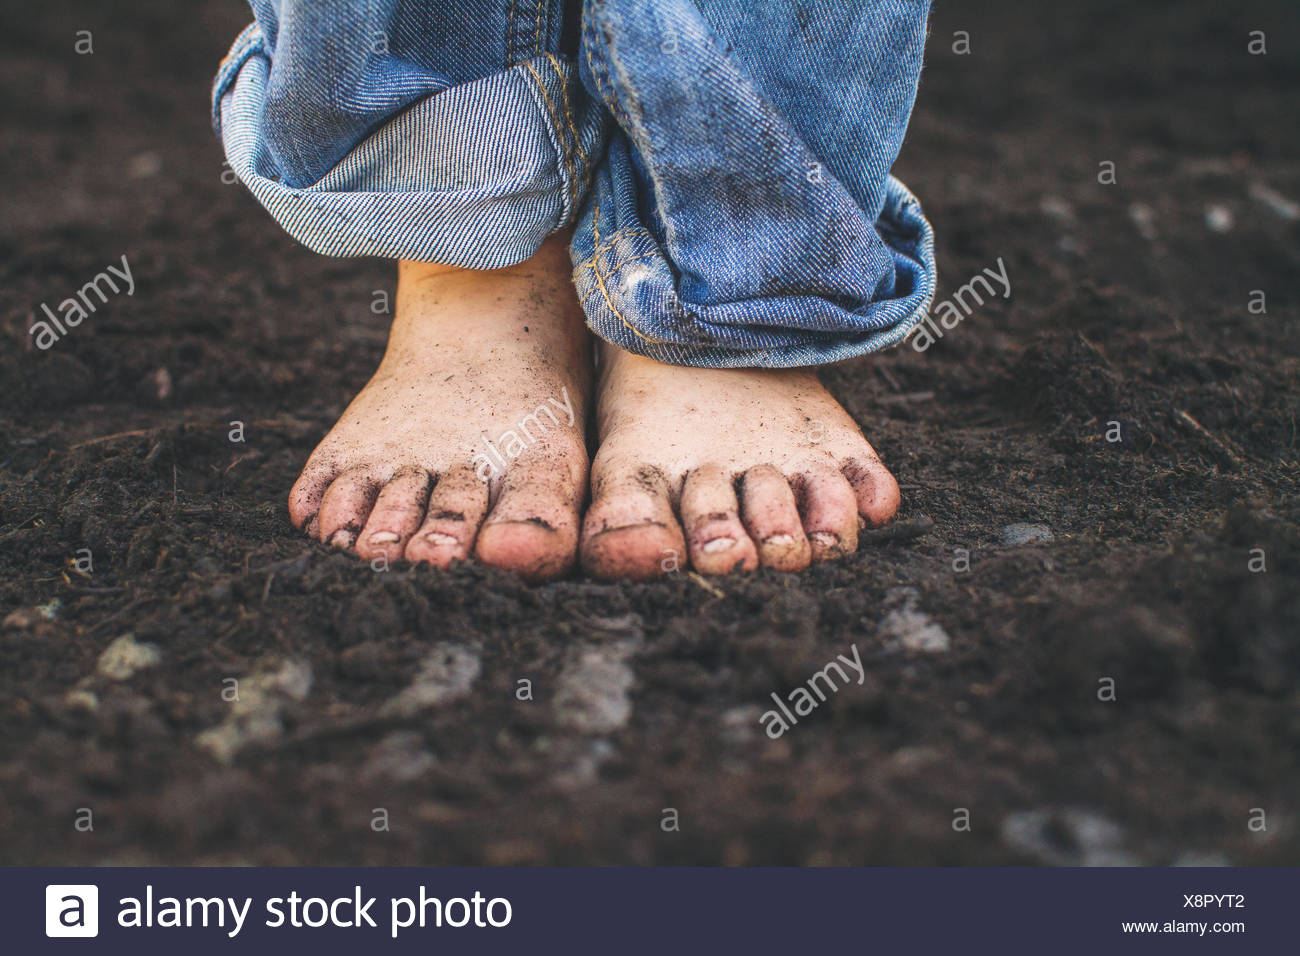 2c83cc0b8165bb Dirty Feet Stock Photos   Dirty Feet Stock Images - Alamy